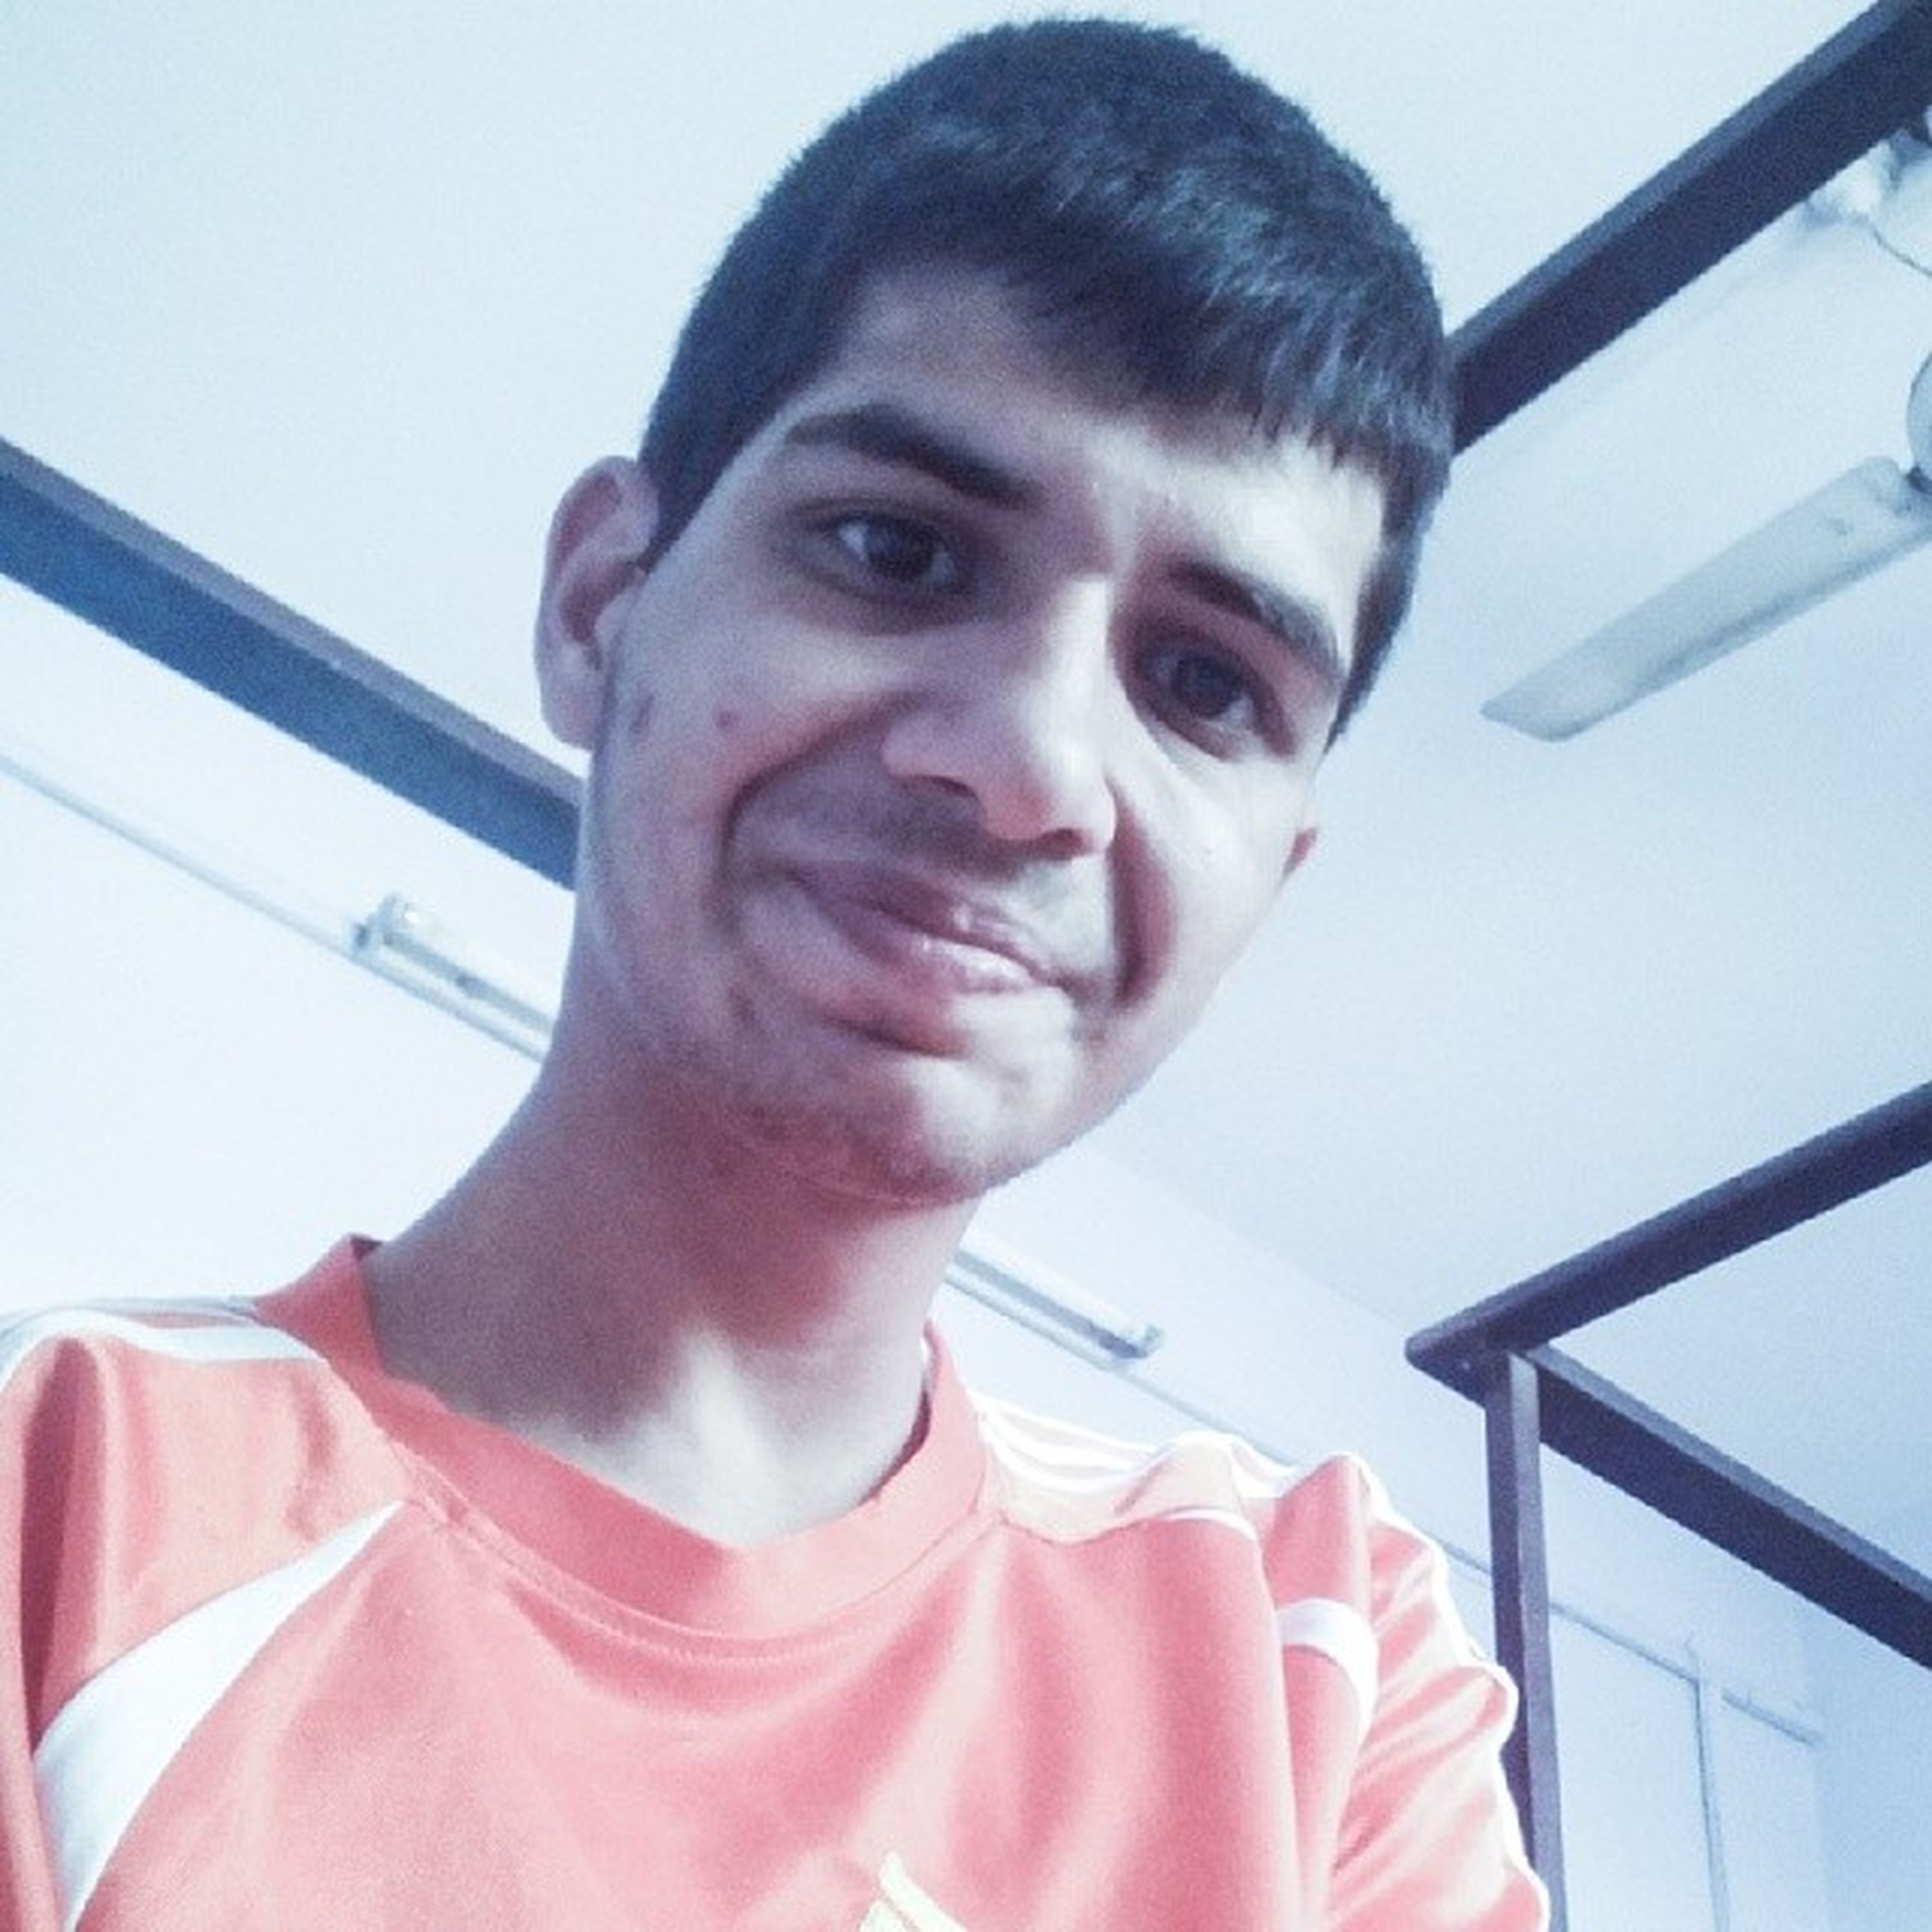 person, looking at camera, portrait, lifestyles, front view, low angle view, headshot, casual clothing, smiling, young adult, leisure activity, childhood, indoors, young men, waist up, close-up, day